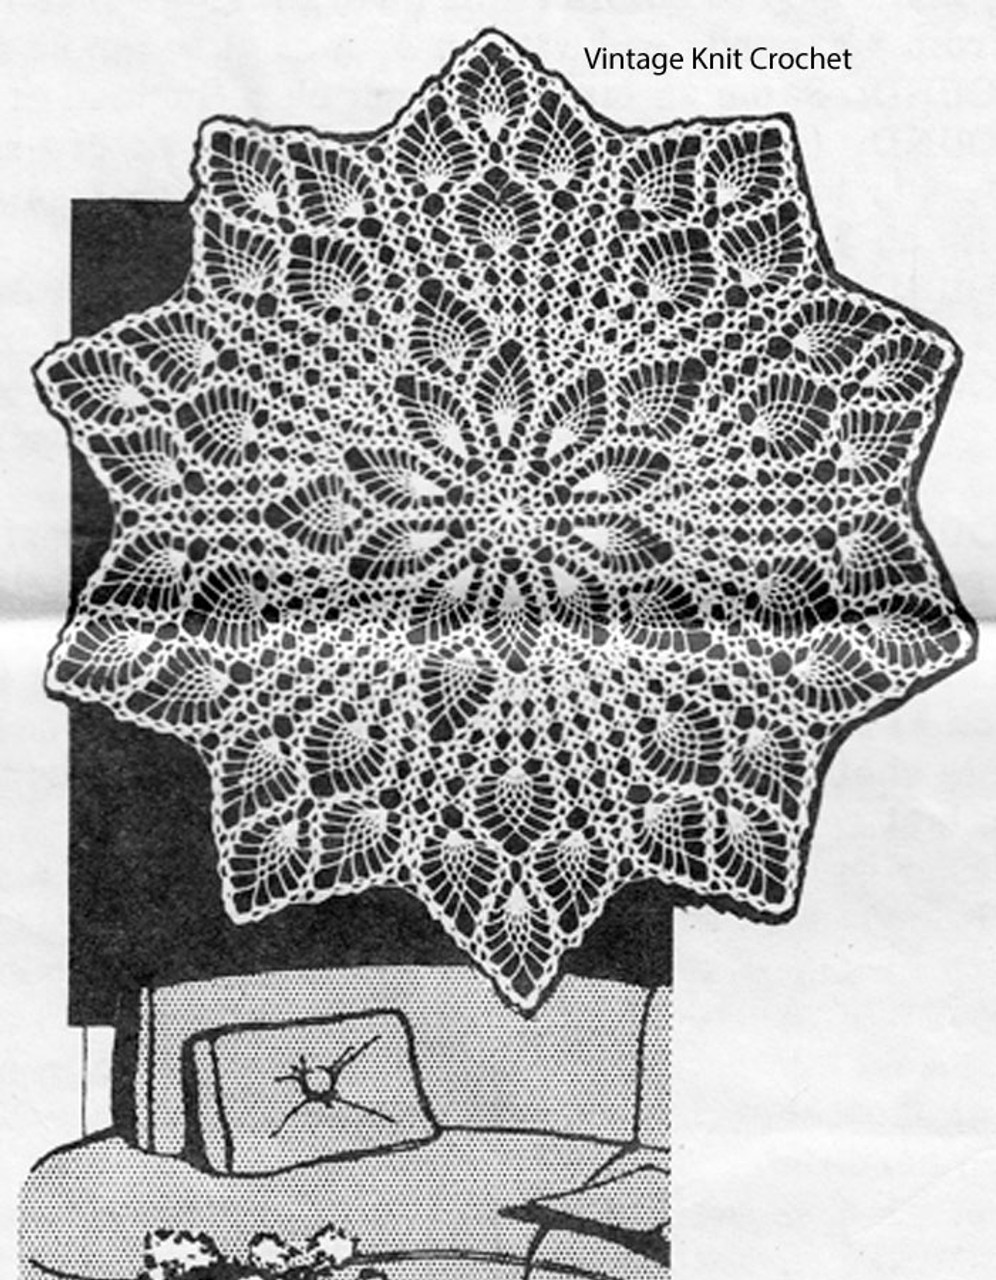 Crochet Pineapple Centerpiece Doily Pattern Design 619